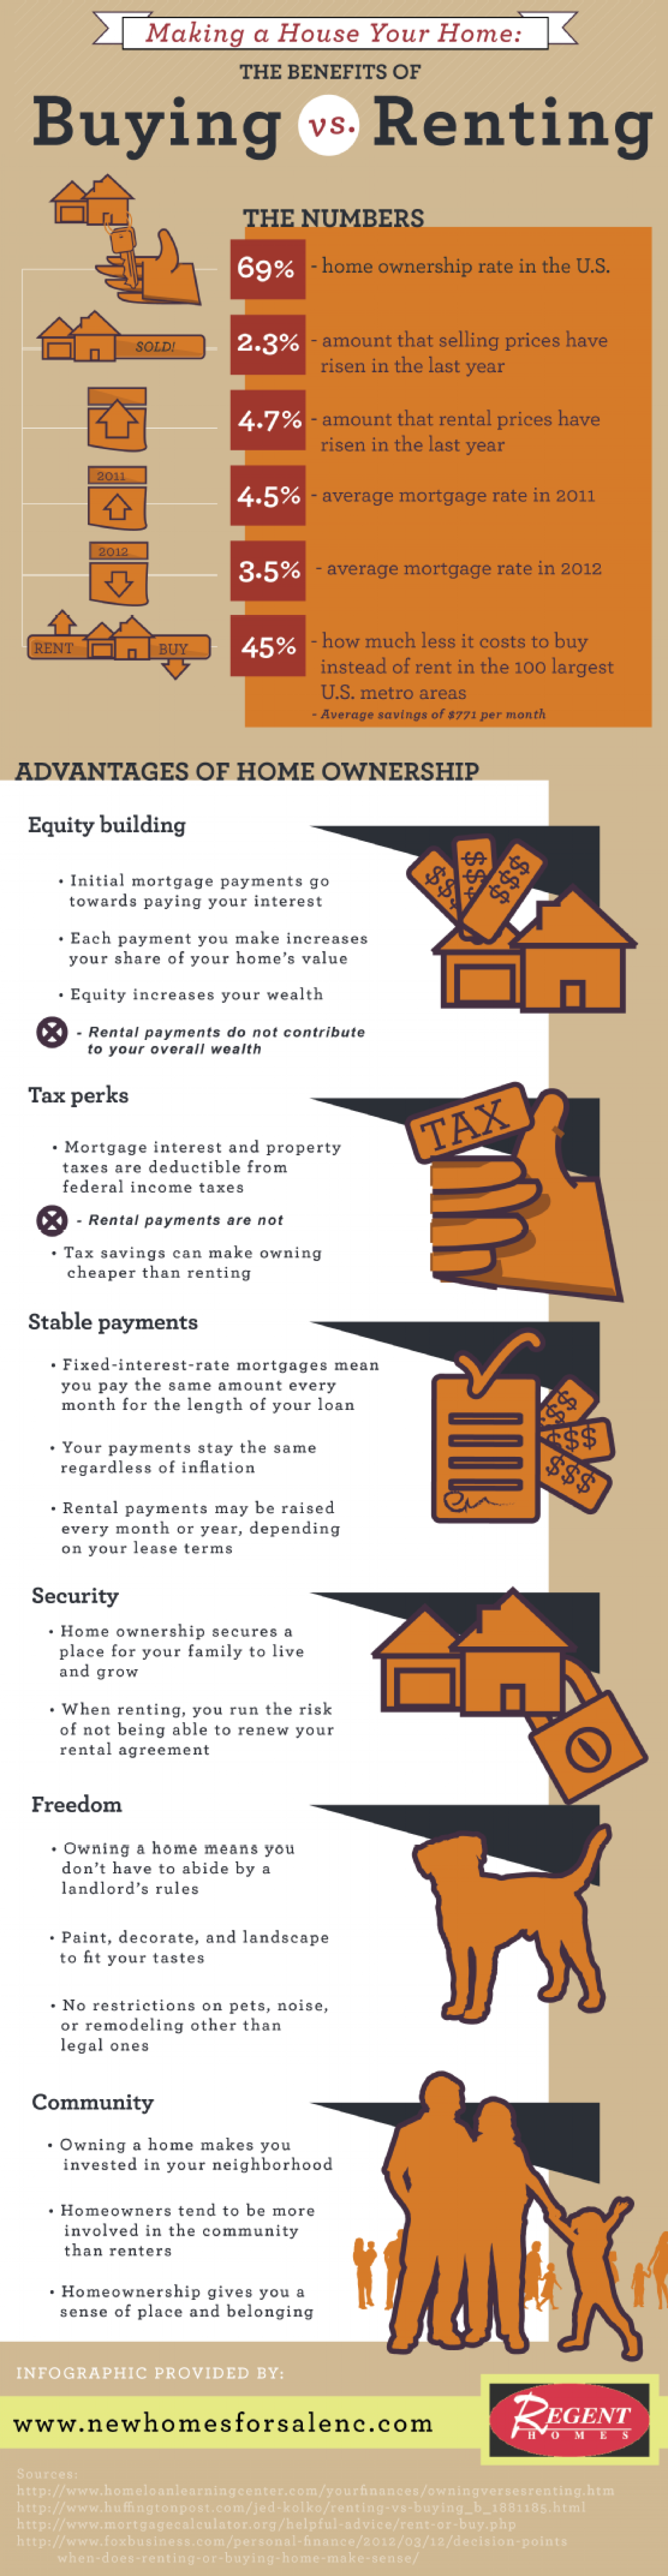 Making a House Your Home: The Benefits of Buying vs. Renting Infographic